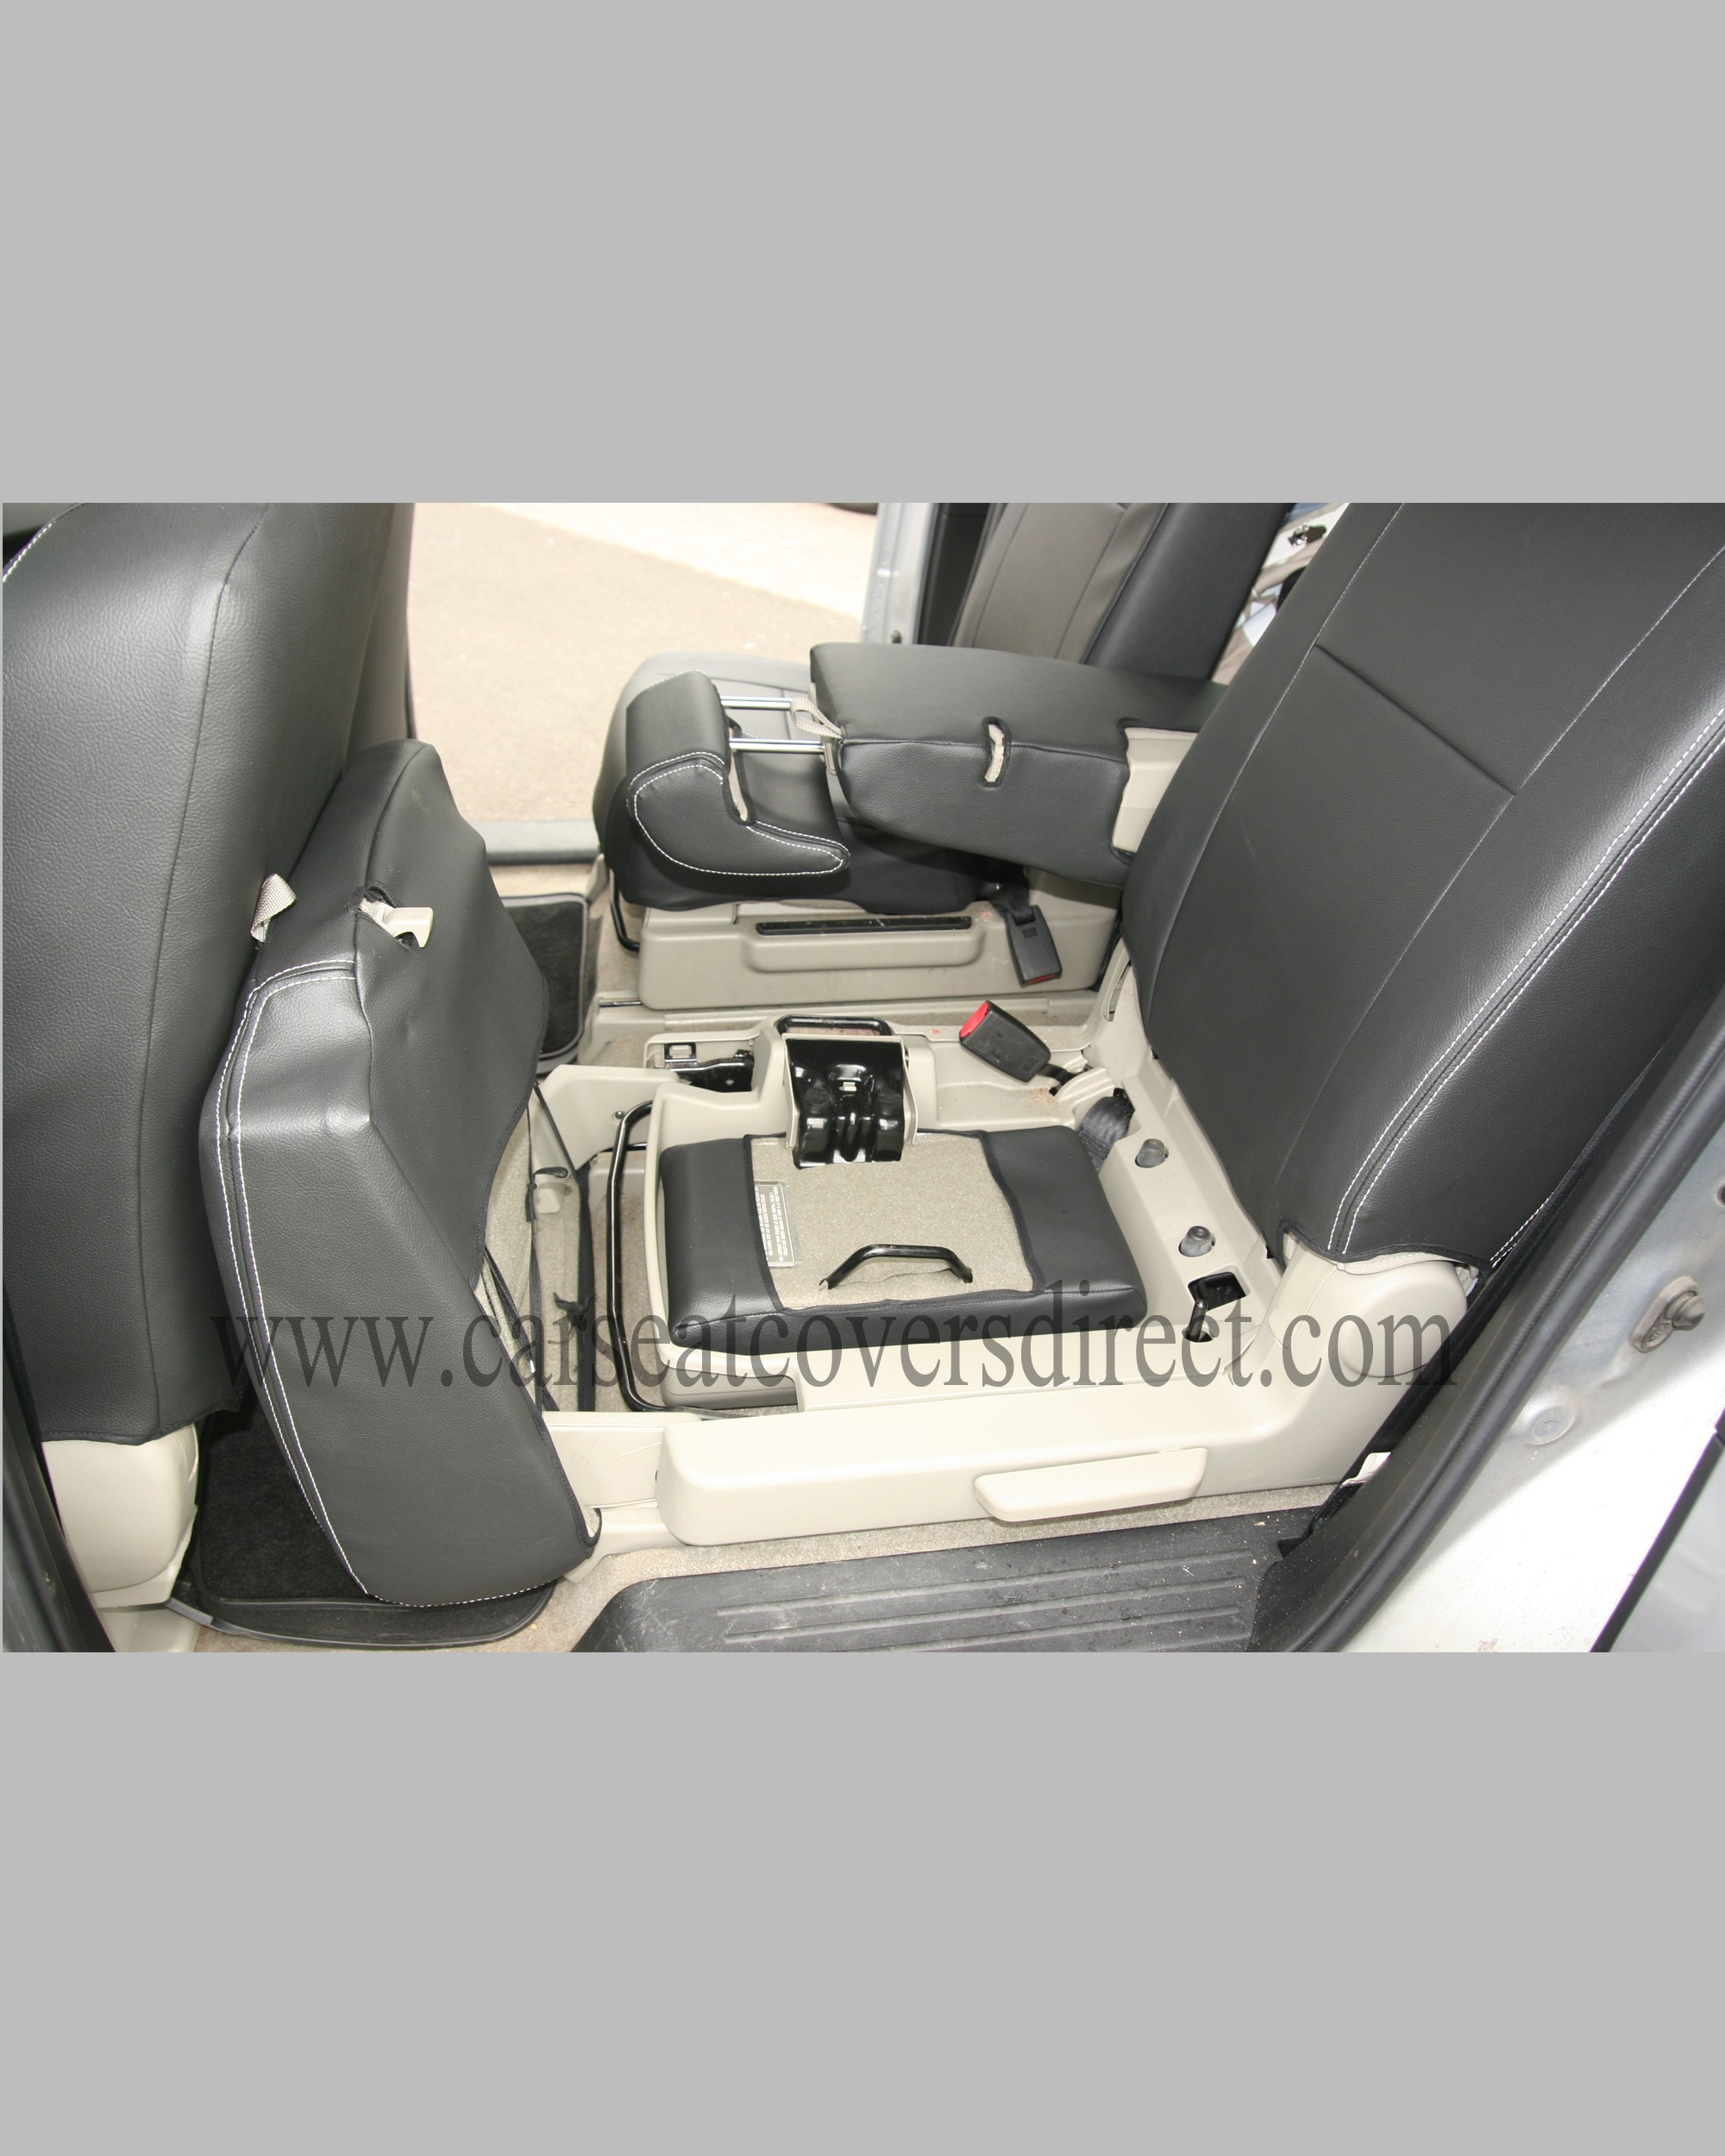 MAZDA 5 Seat Covers Car Seat Covers Direct